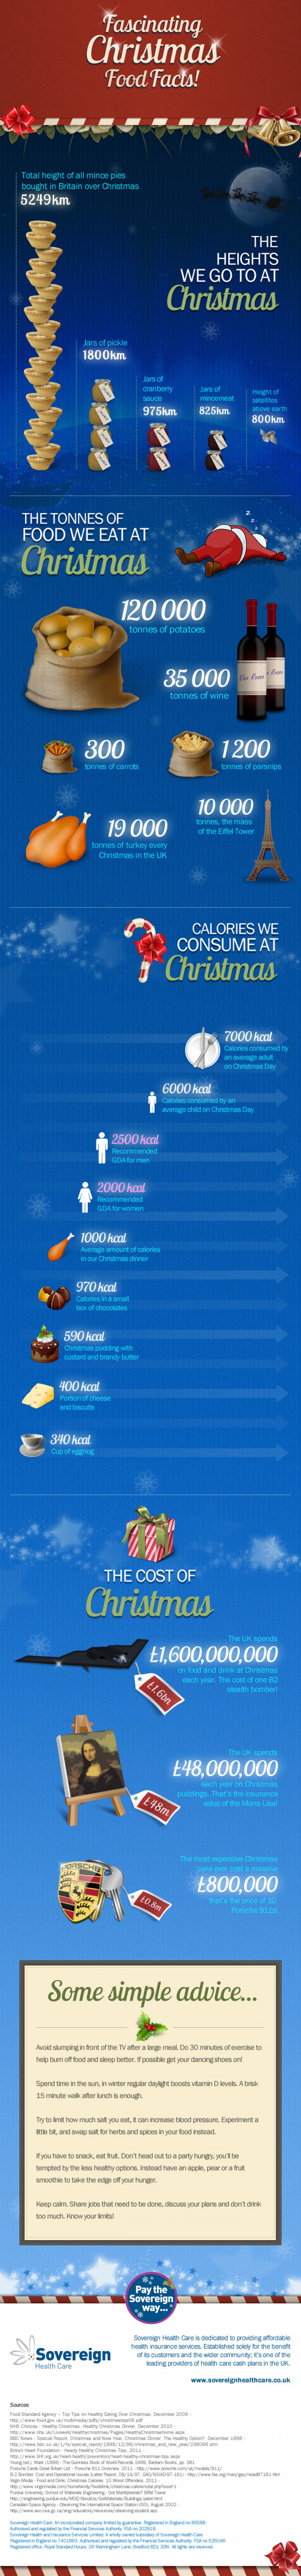 Fascinating Christmas Food Facts! Infographic